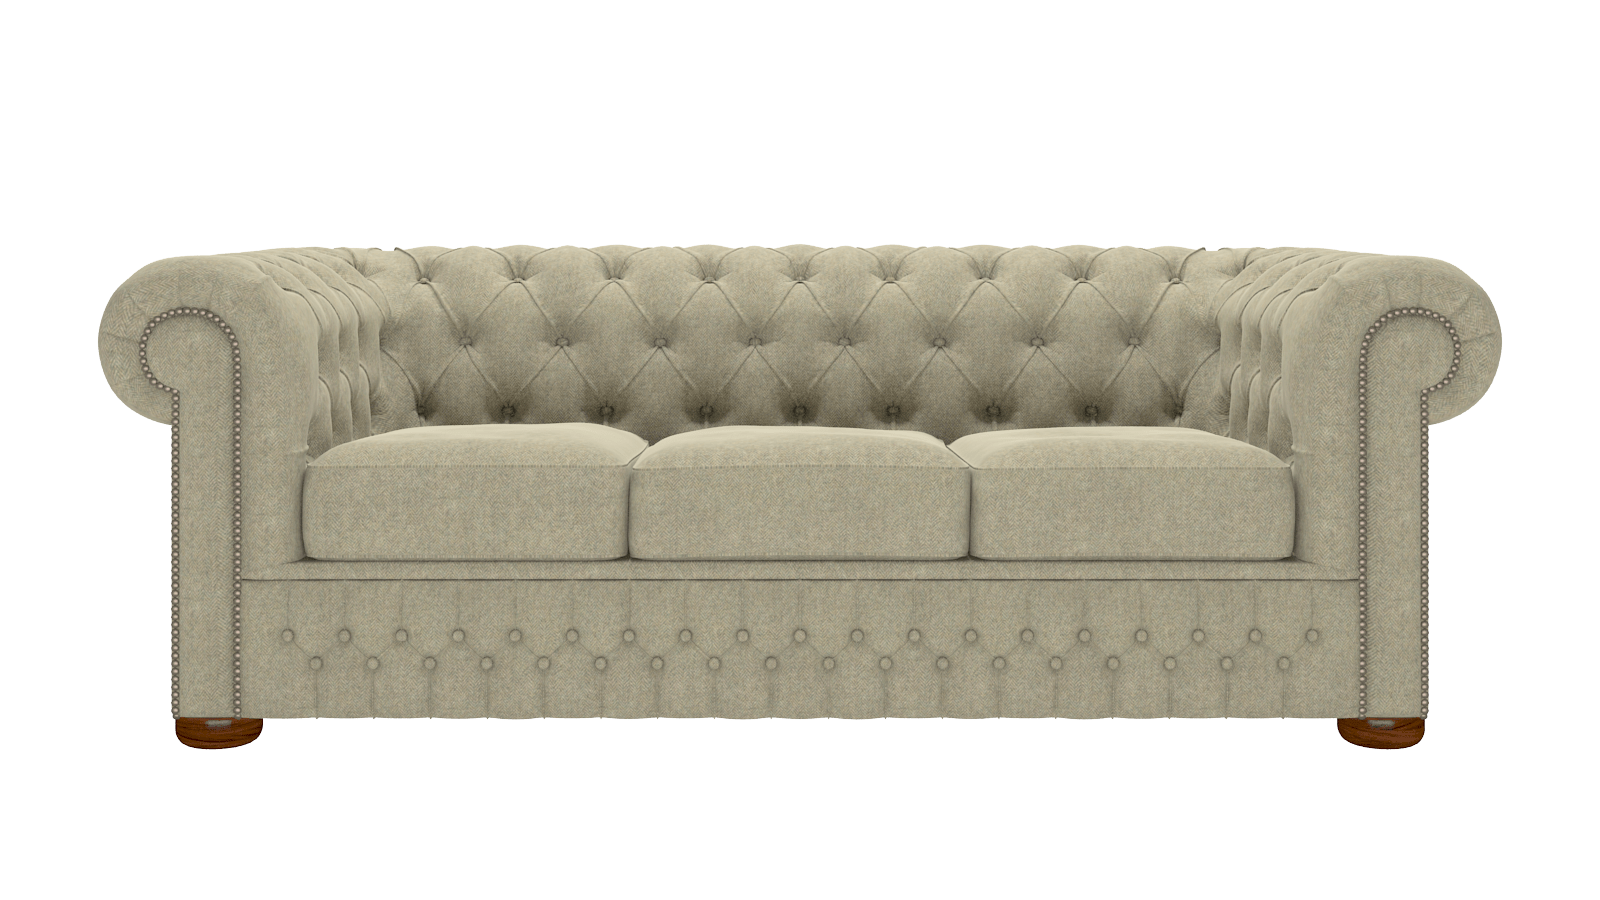 Sofa In Chesterfield Look Fabric Sofa Care How To Clean Your Fabric Chesterfield Timeless